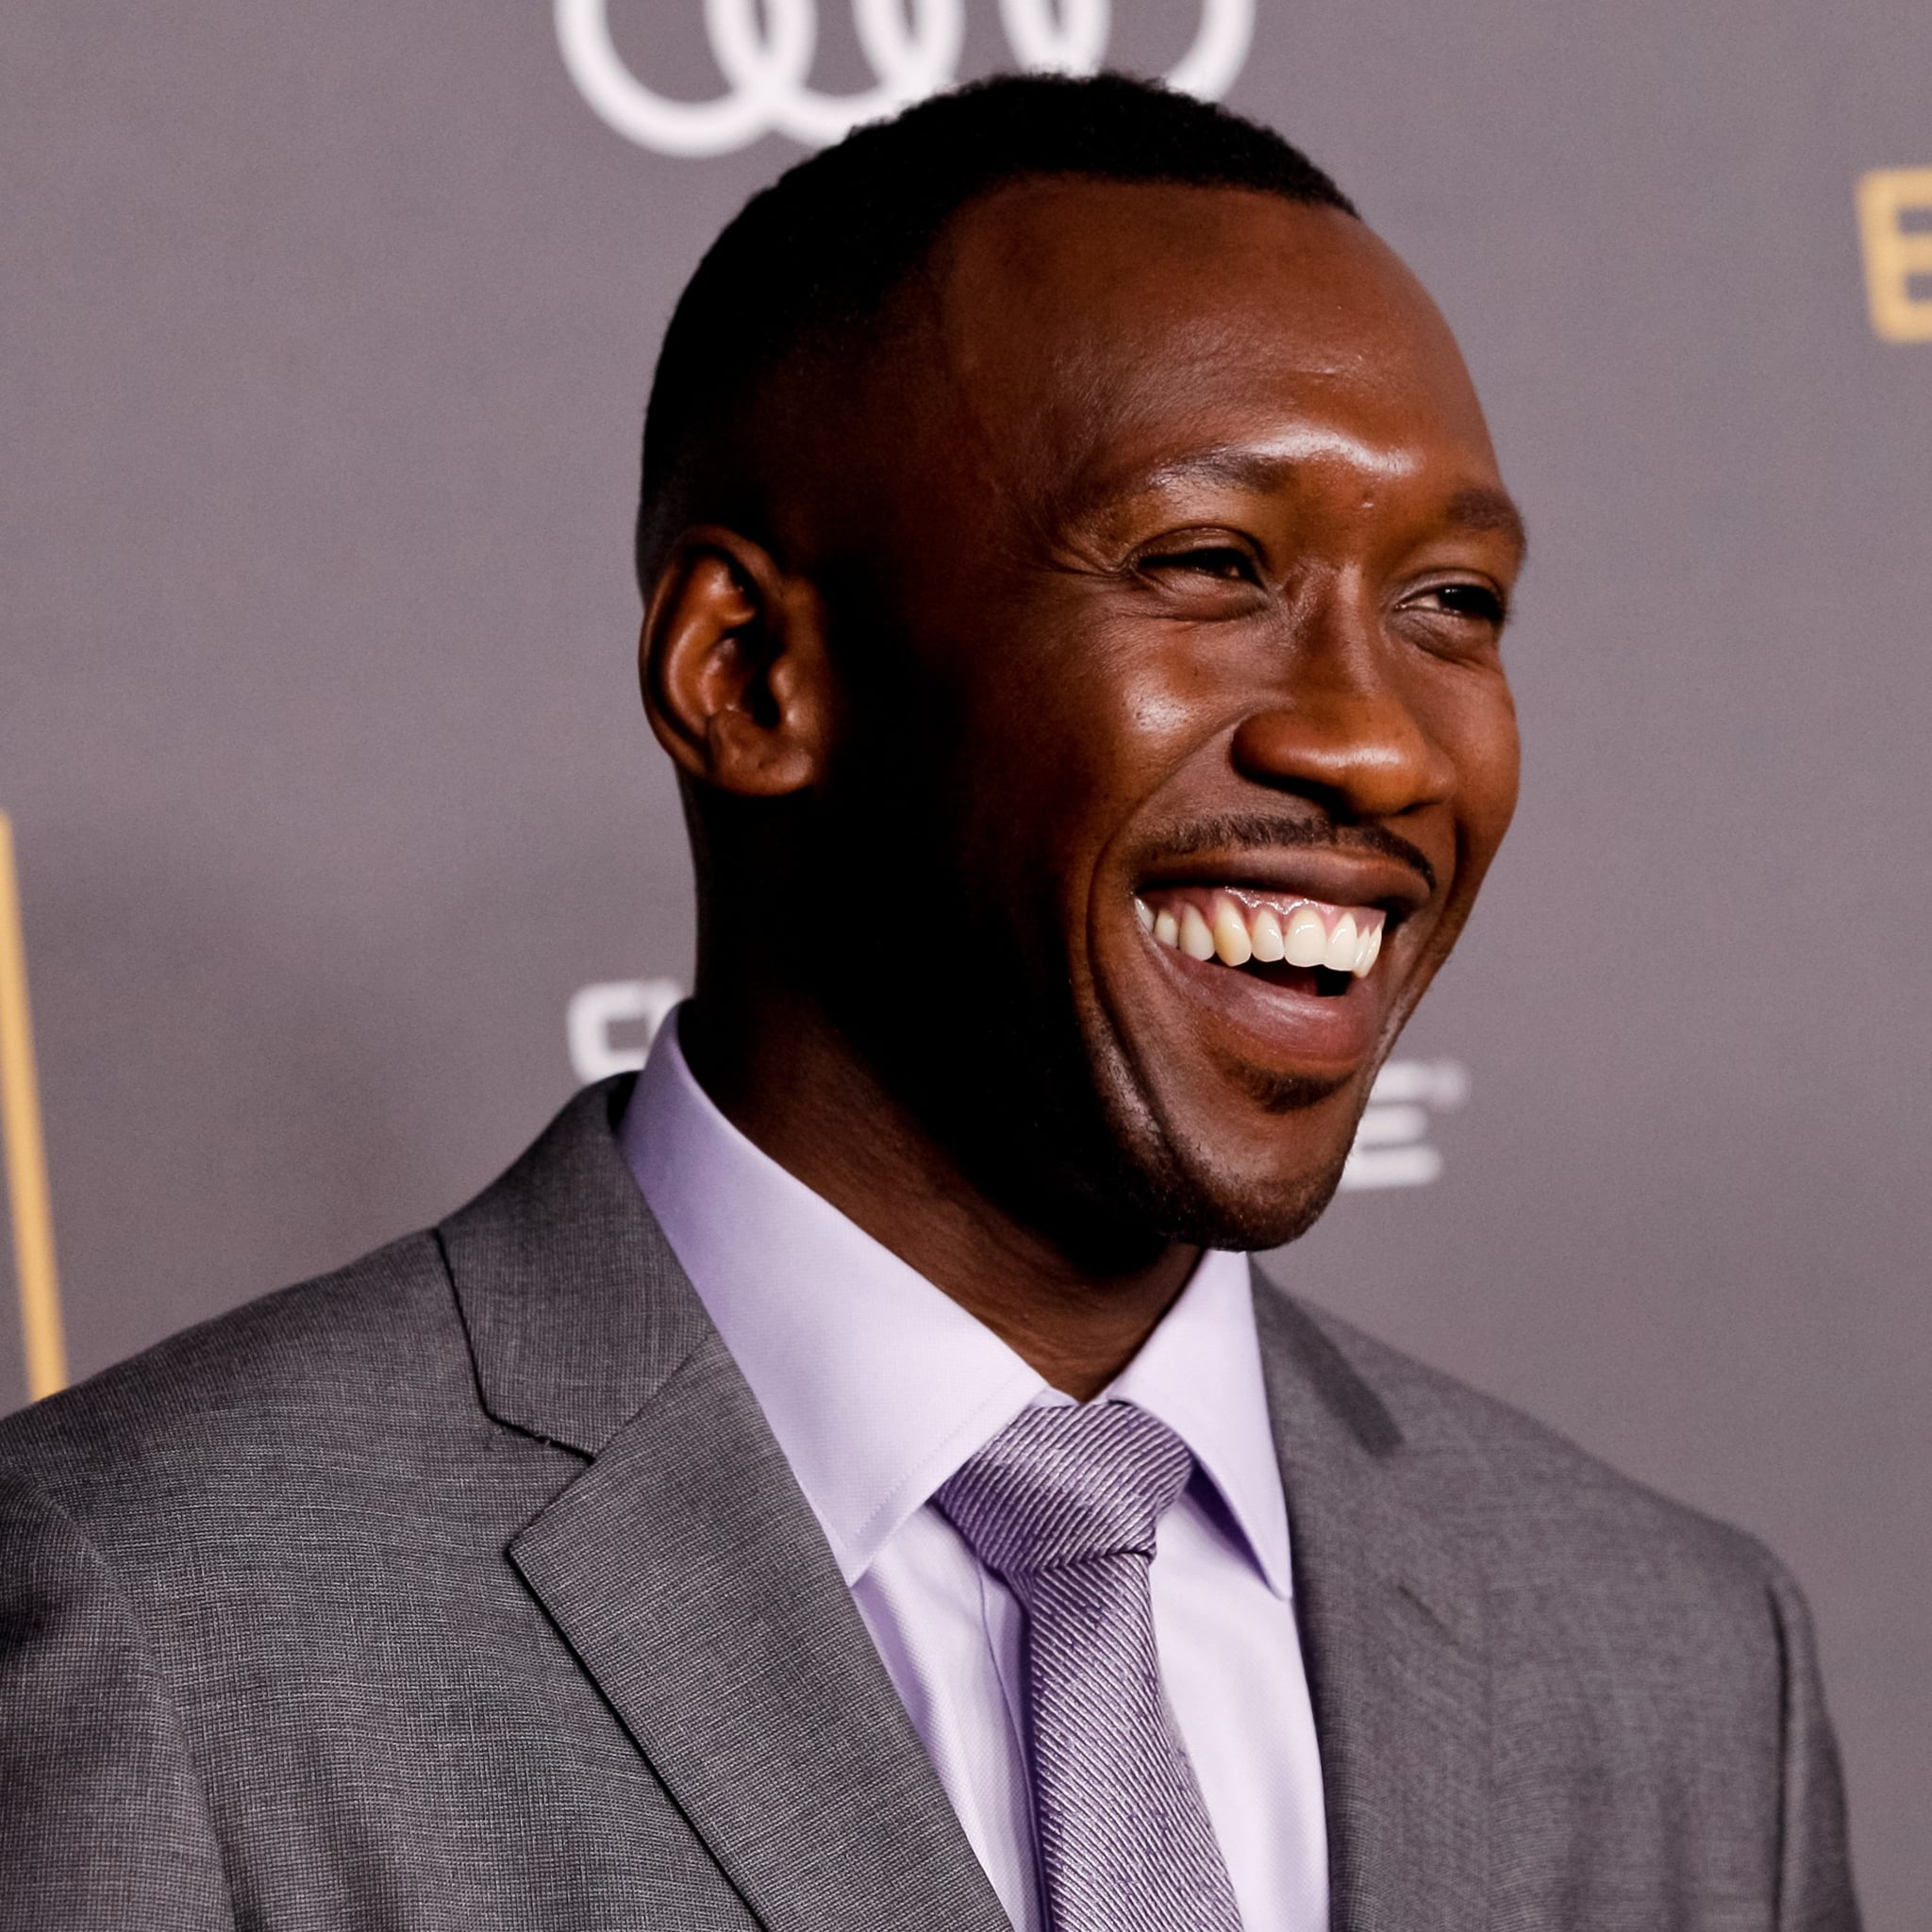 mahershala ali amahershala ali moonlight, mahershala ali wife, mahershala ali кинопоиск, mahershala ali height, mahershala ali instagram, mahershala ali luke cage, mahershala ali wiki, mahershala ali cat, mahershala ali twitter, mahershala ali speech, mahershala ali suits, mahershala ali islam, mahershala ali laugh, mahershala ali convert muslim, mahershala ali style, mahershala ali tv tropes, mahershala ali graduated, mahershala ali movies, mahershala ali a, mahershala ali how to pronounce